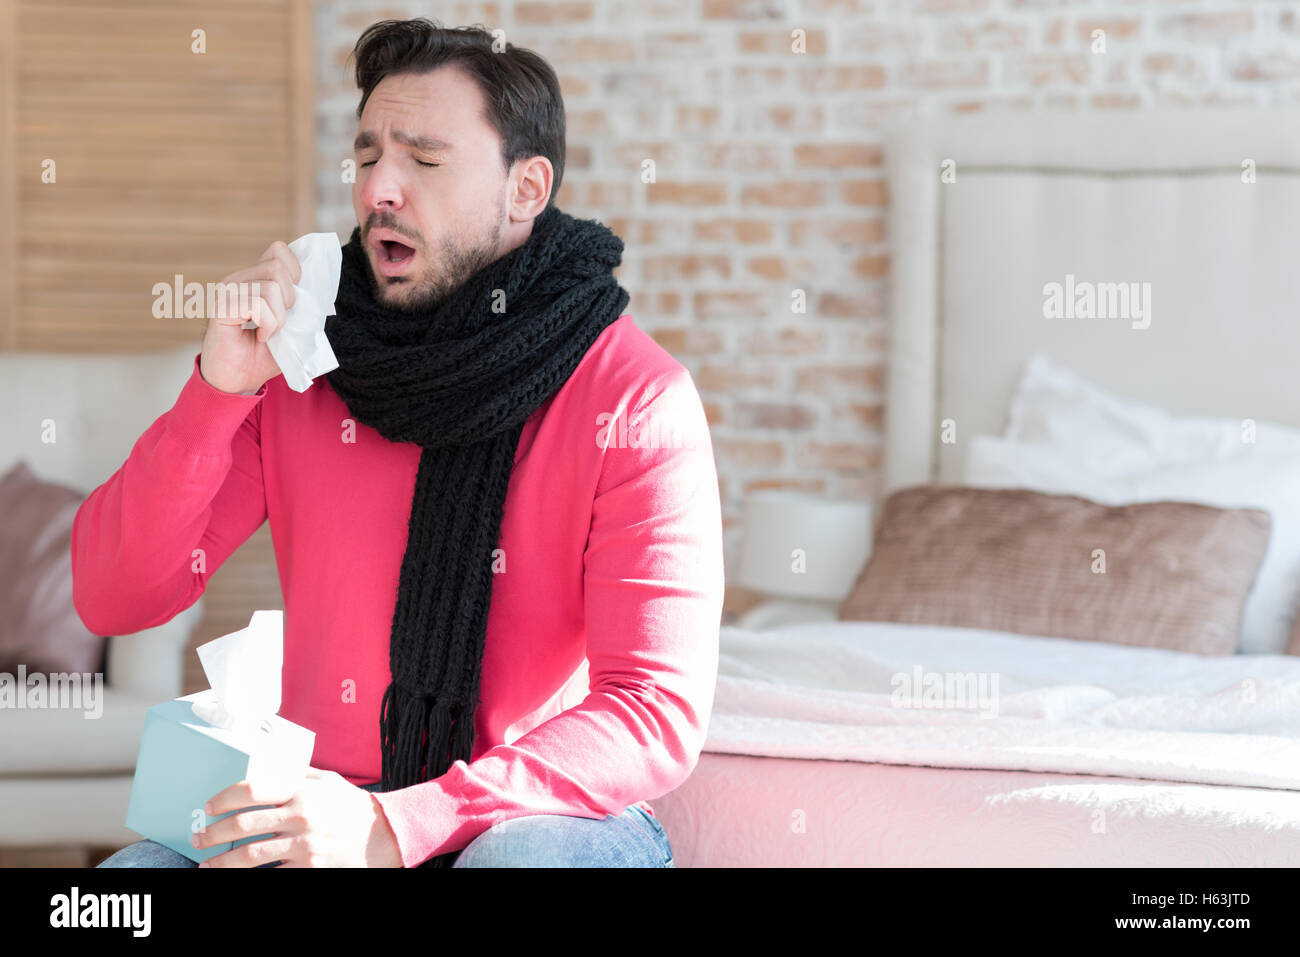 Ill young man sneezing - Stock Image